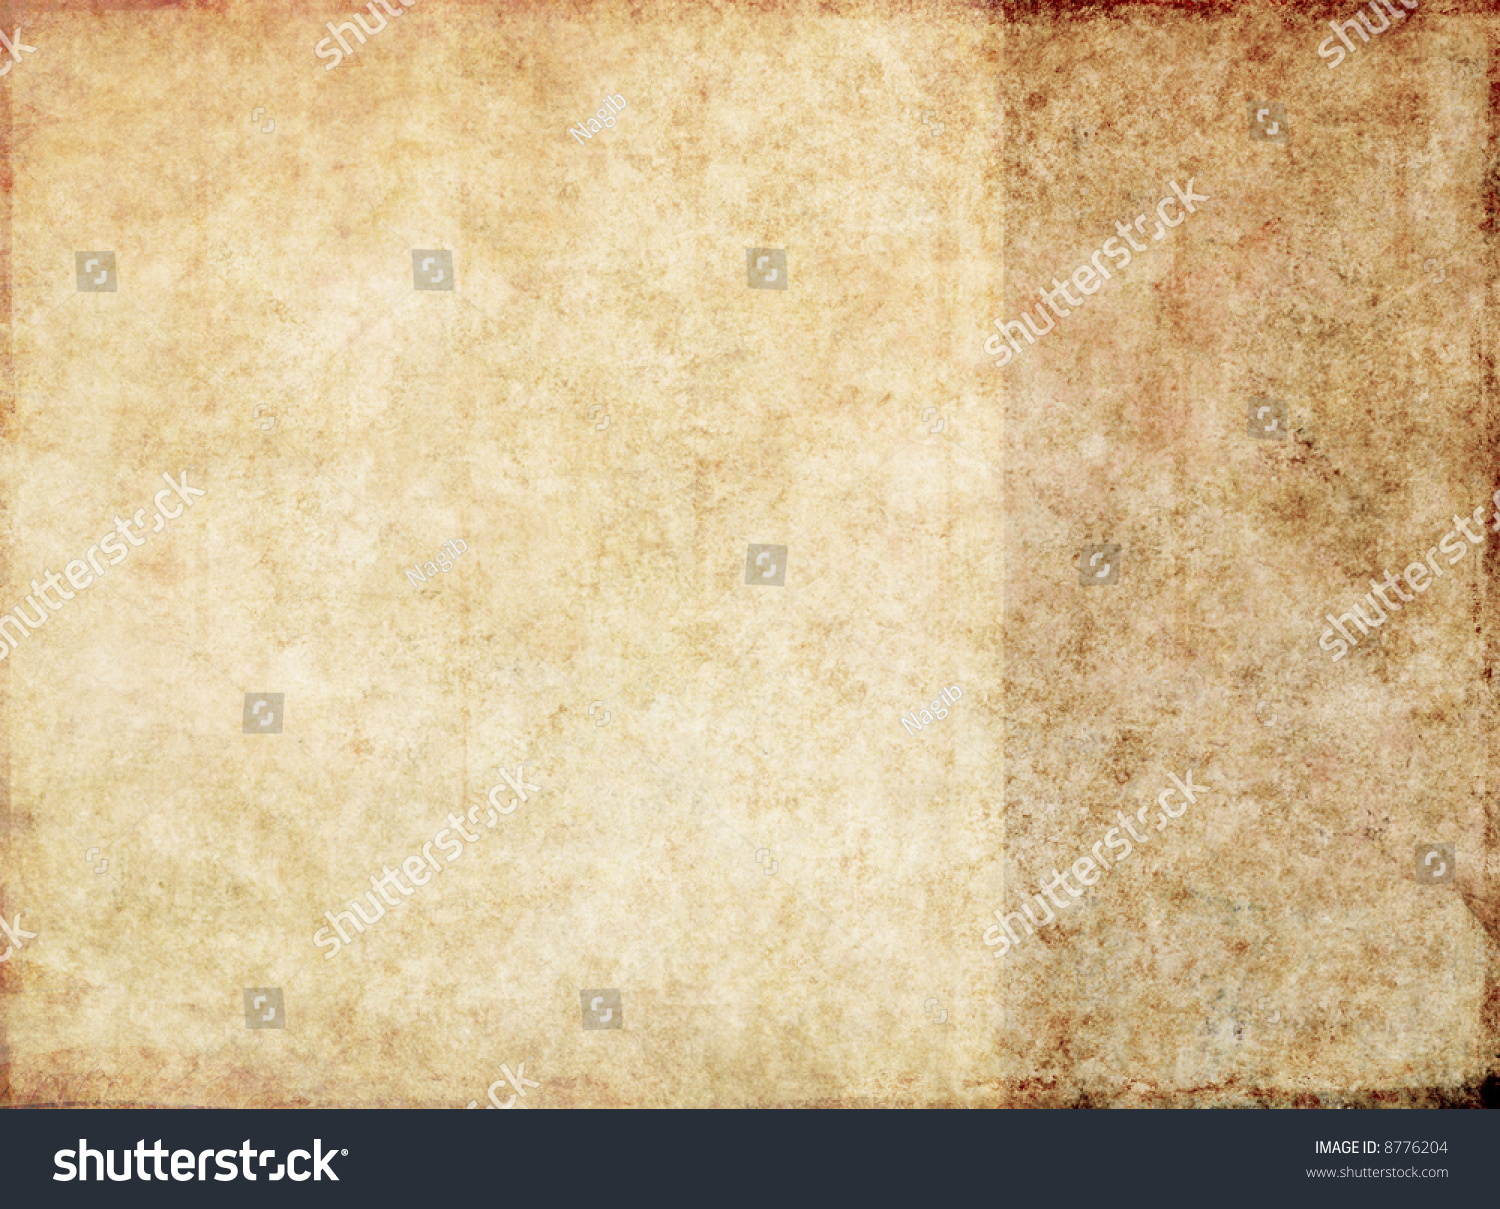 Abstract Brown Background Image Interesting Texture Stock ... - photo#2